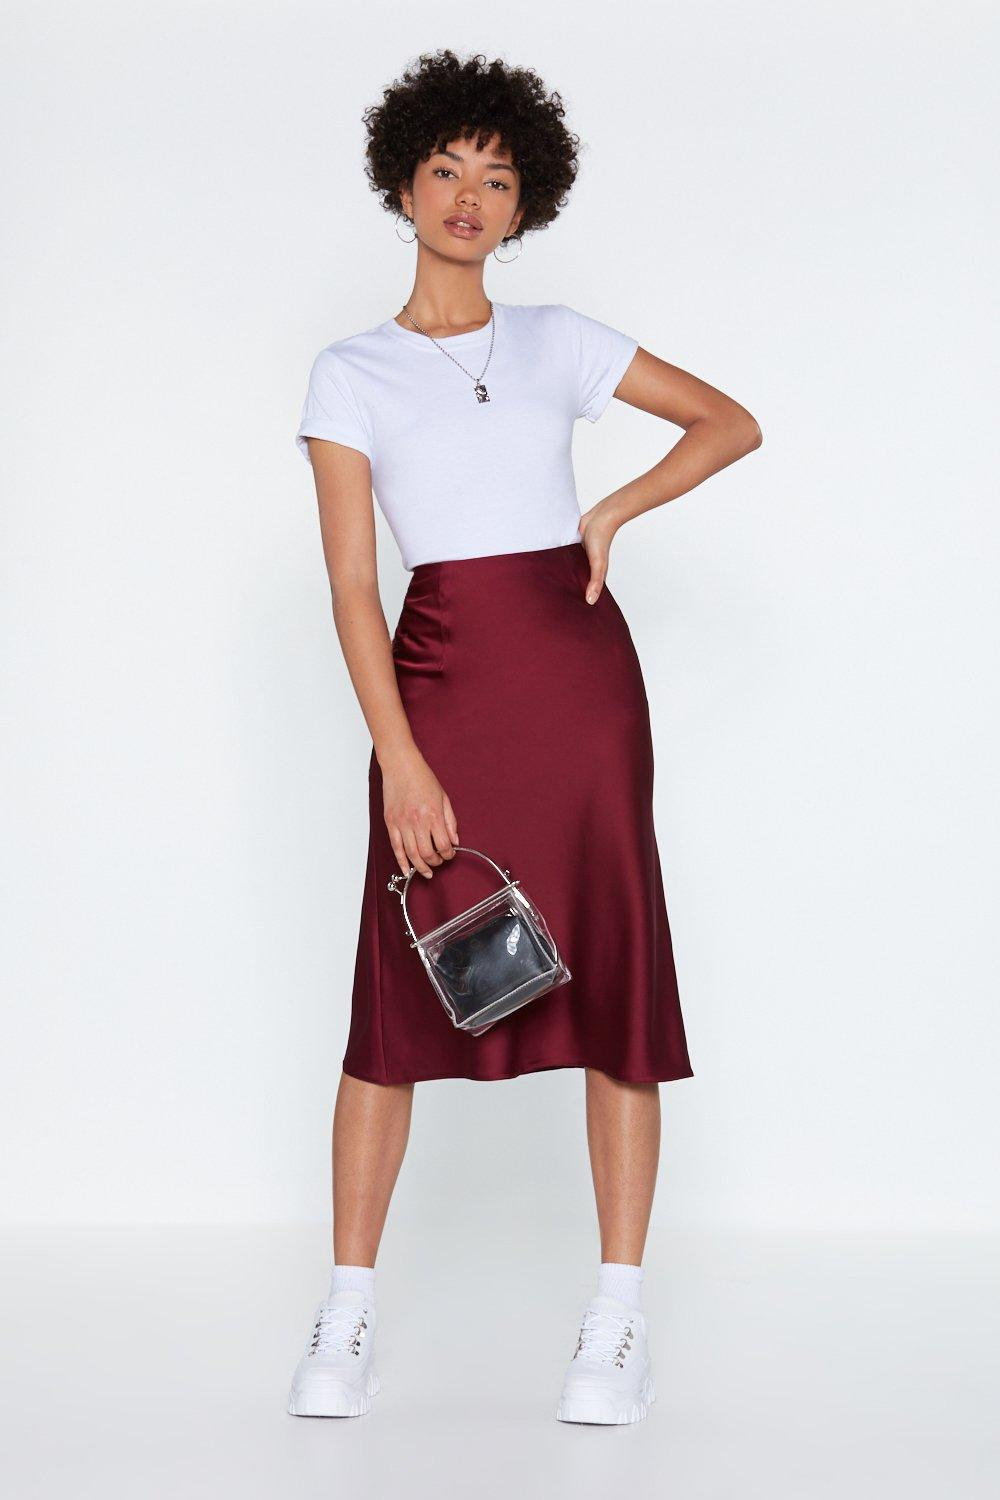 Just My Type Satin Midi Skirt | Shop Clothes at Nasty Gal!